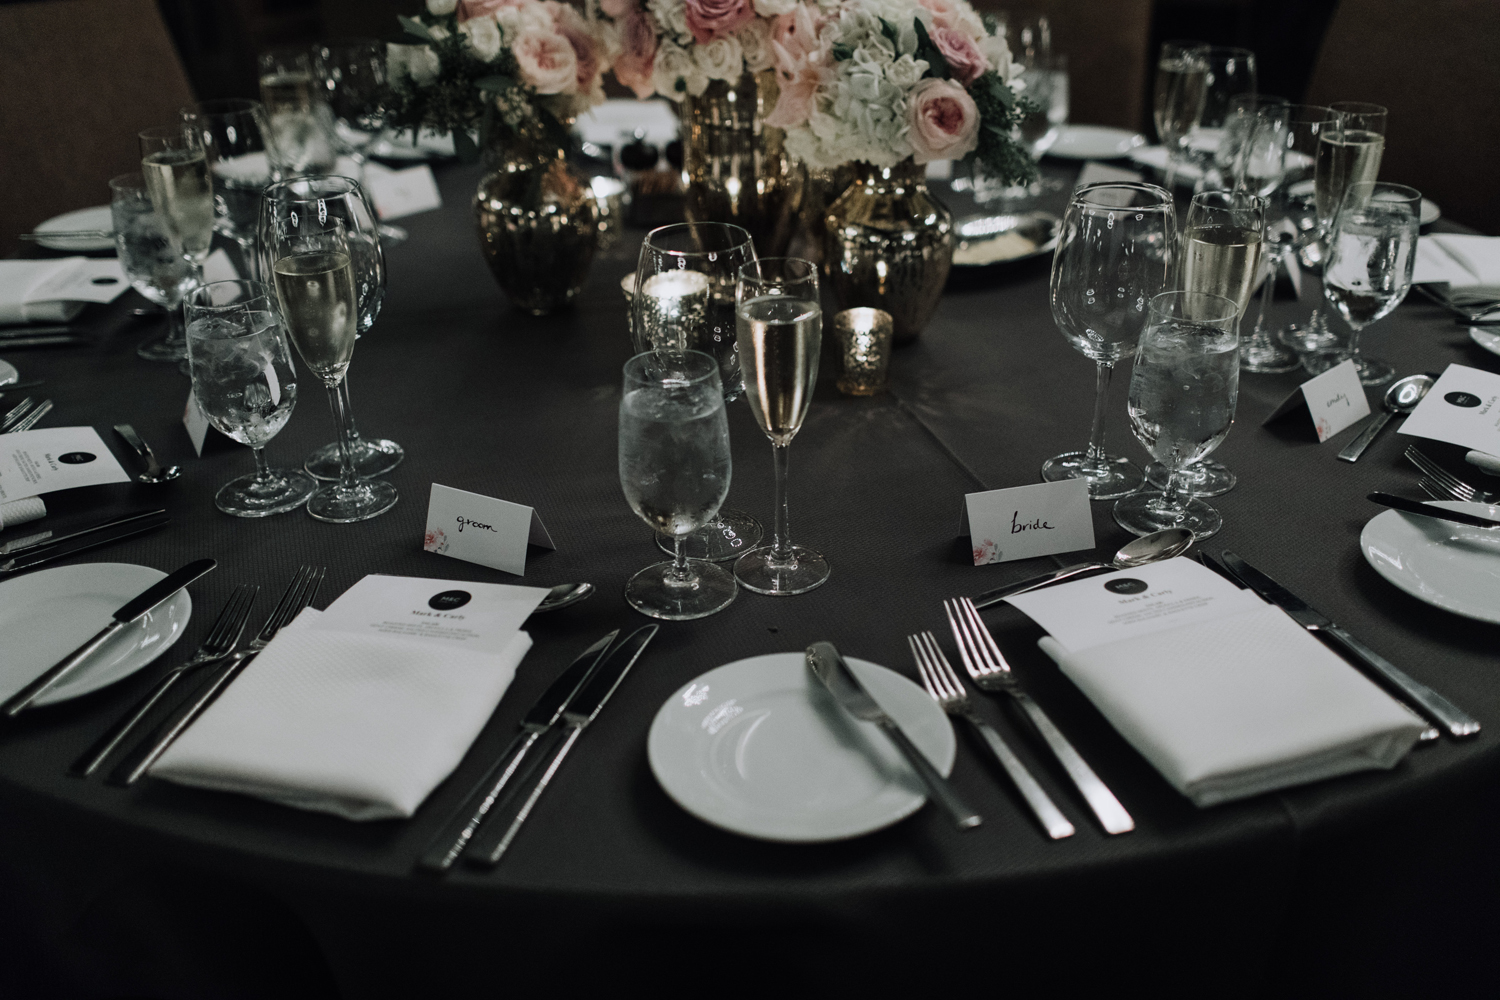 Thompson Hotel Ballroom Wedding